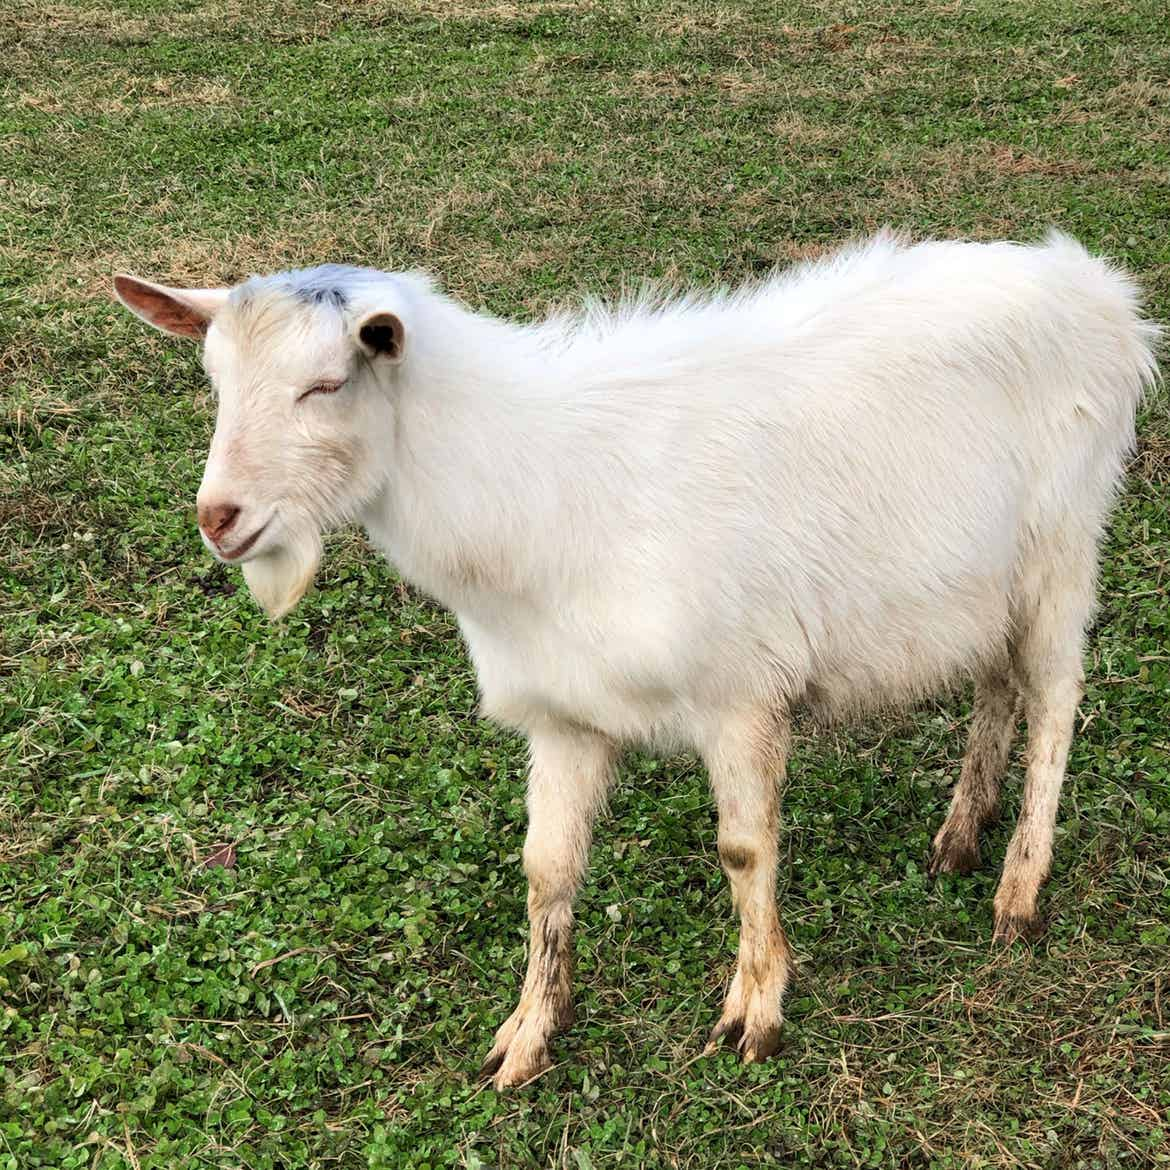 A little white goat strolls the greens at the farmyard located at Biltmore Estates Village.